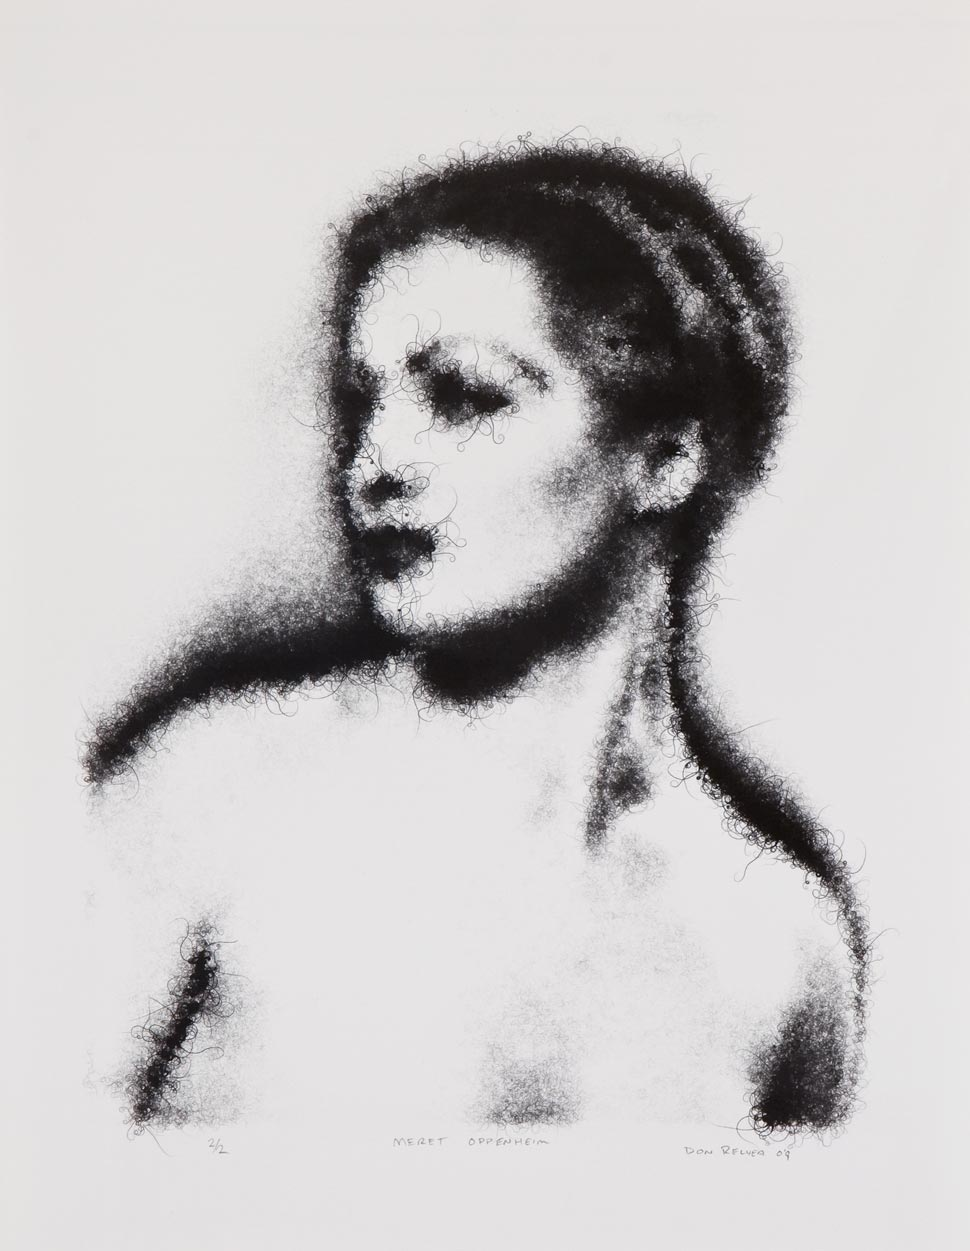 Don Relyea - Hair Particle Sketch of Meret Oppenheim